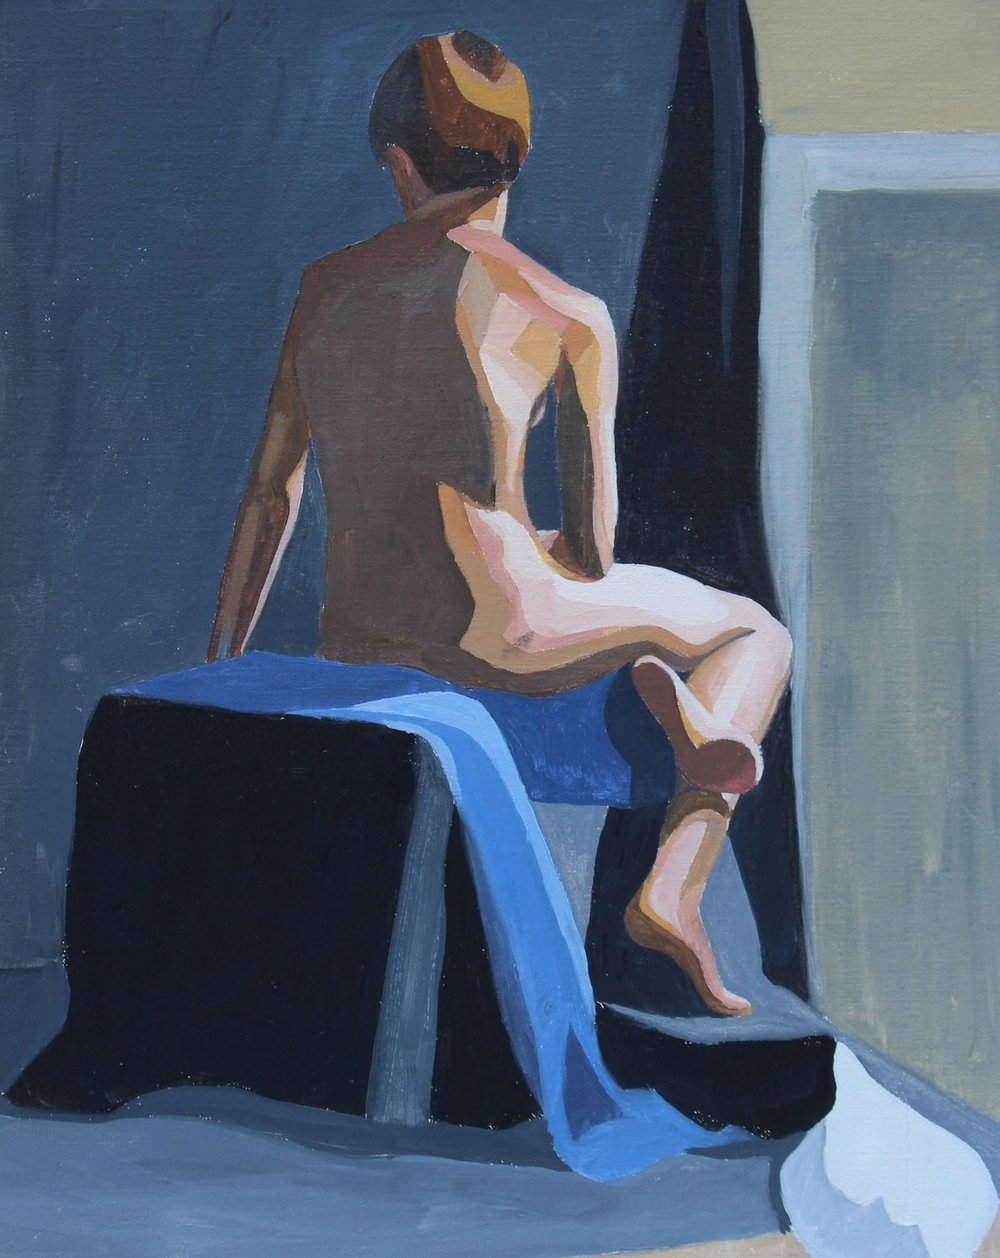 oil on linen  13 x 11 inches  2015